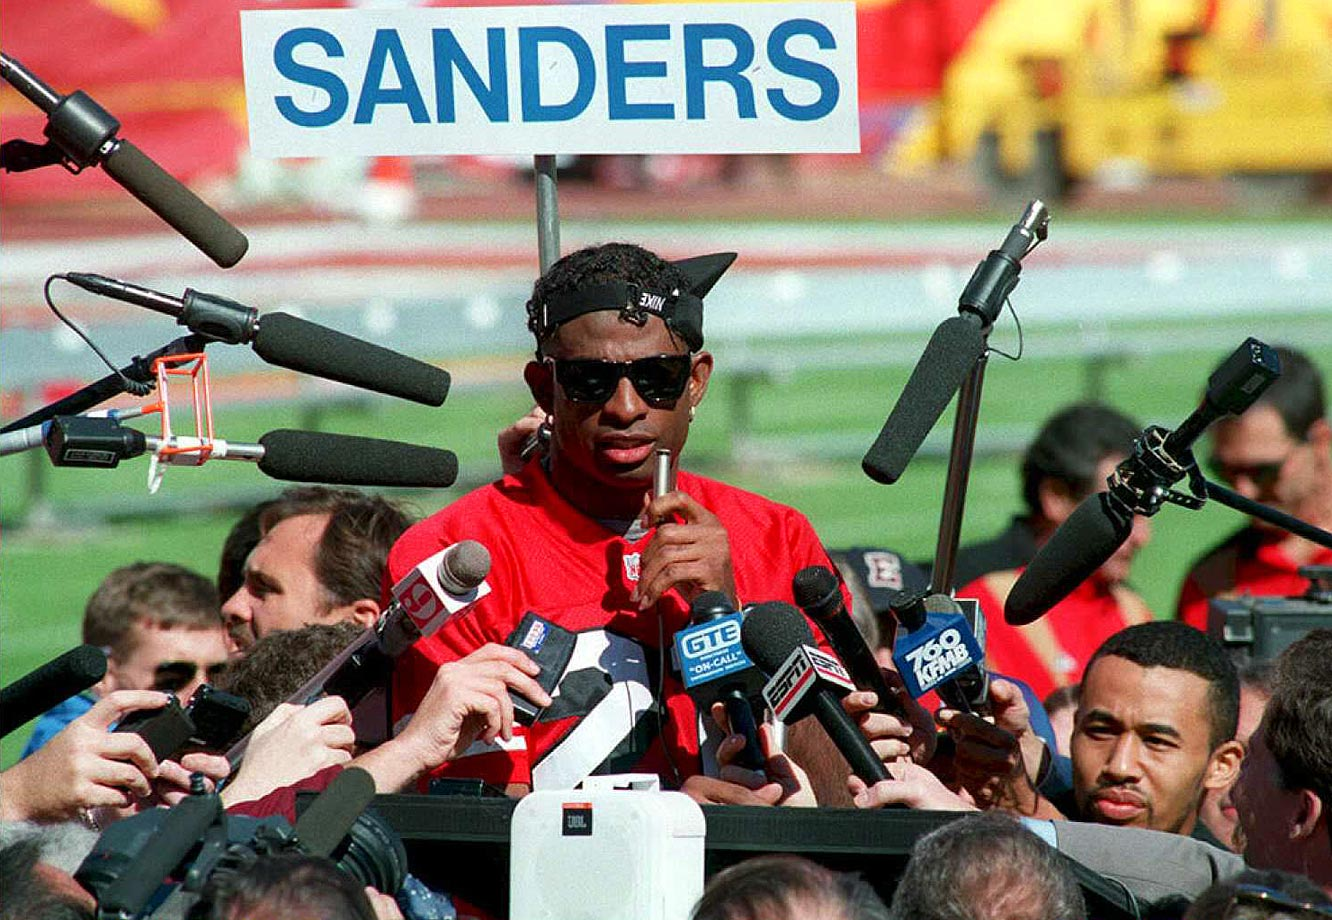 San Francisco cornerback Deion Sanders answers questions during Super Bowl XXIX Media Day in Miami. Prime Time had one interception in San Francisco's 49-26 victory over San Diego.